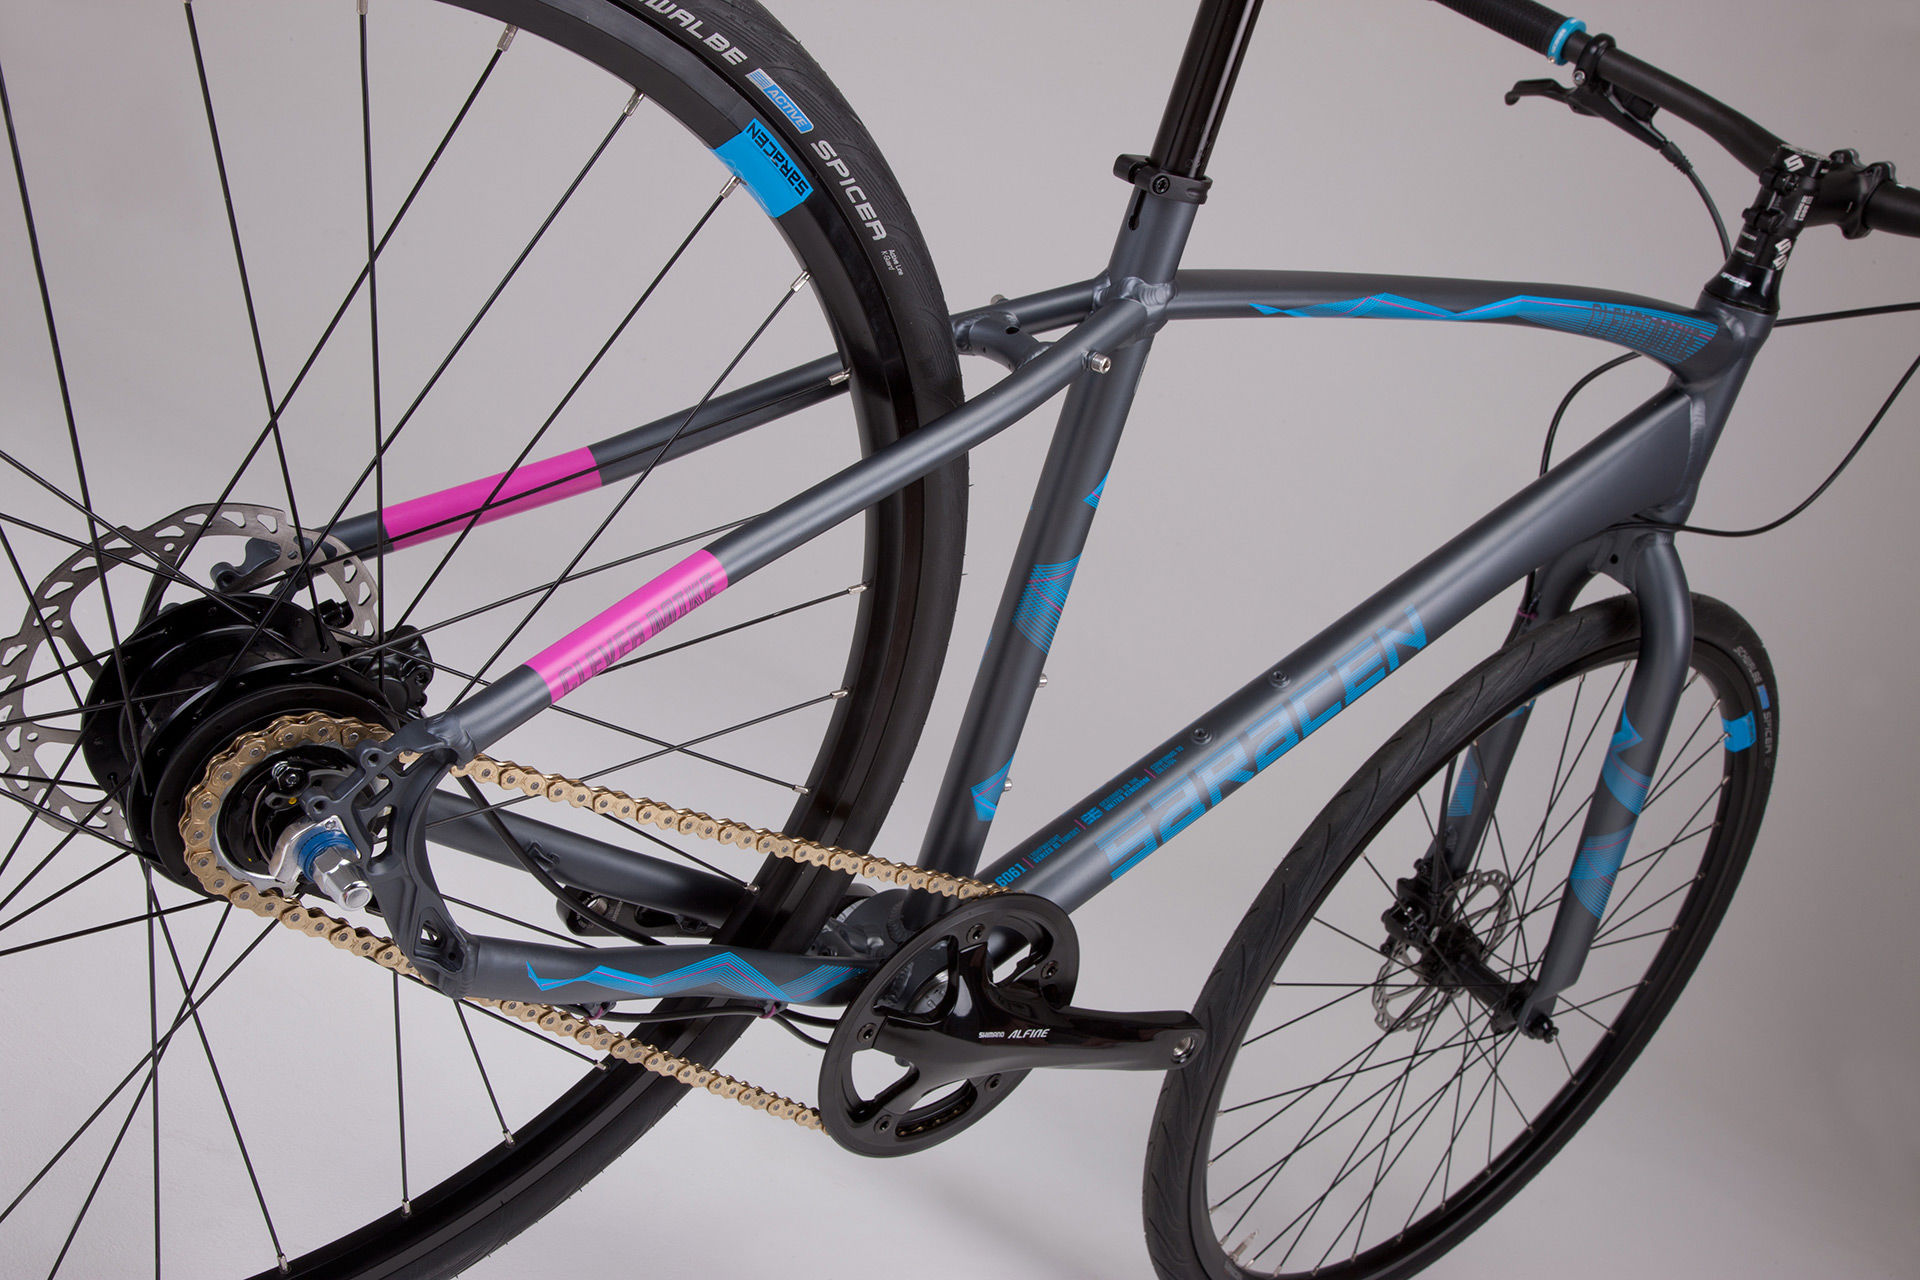 Saracen Urban Clever Mike 2015 review - The Bike List